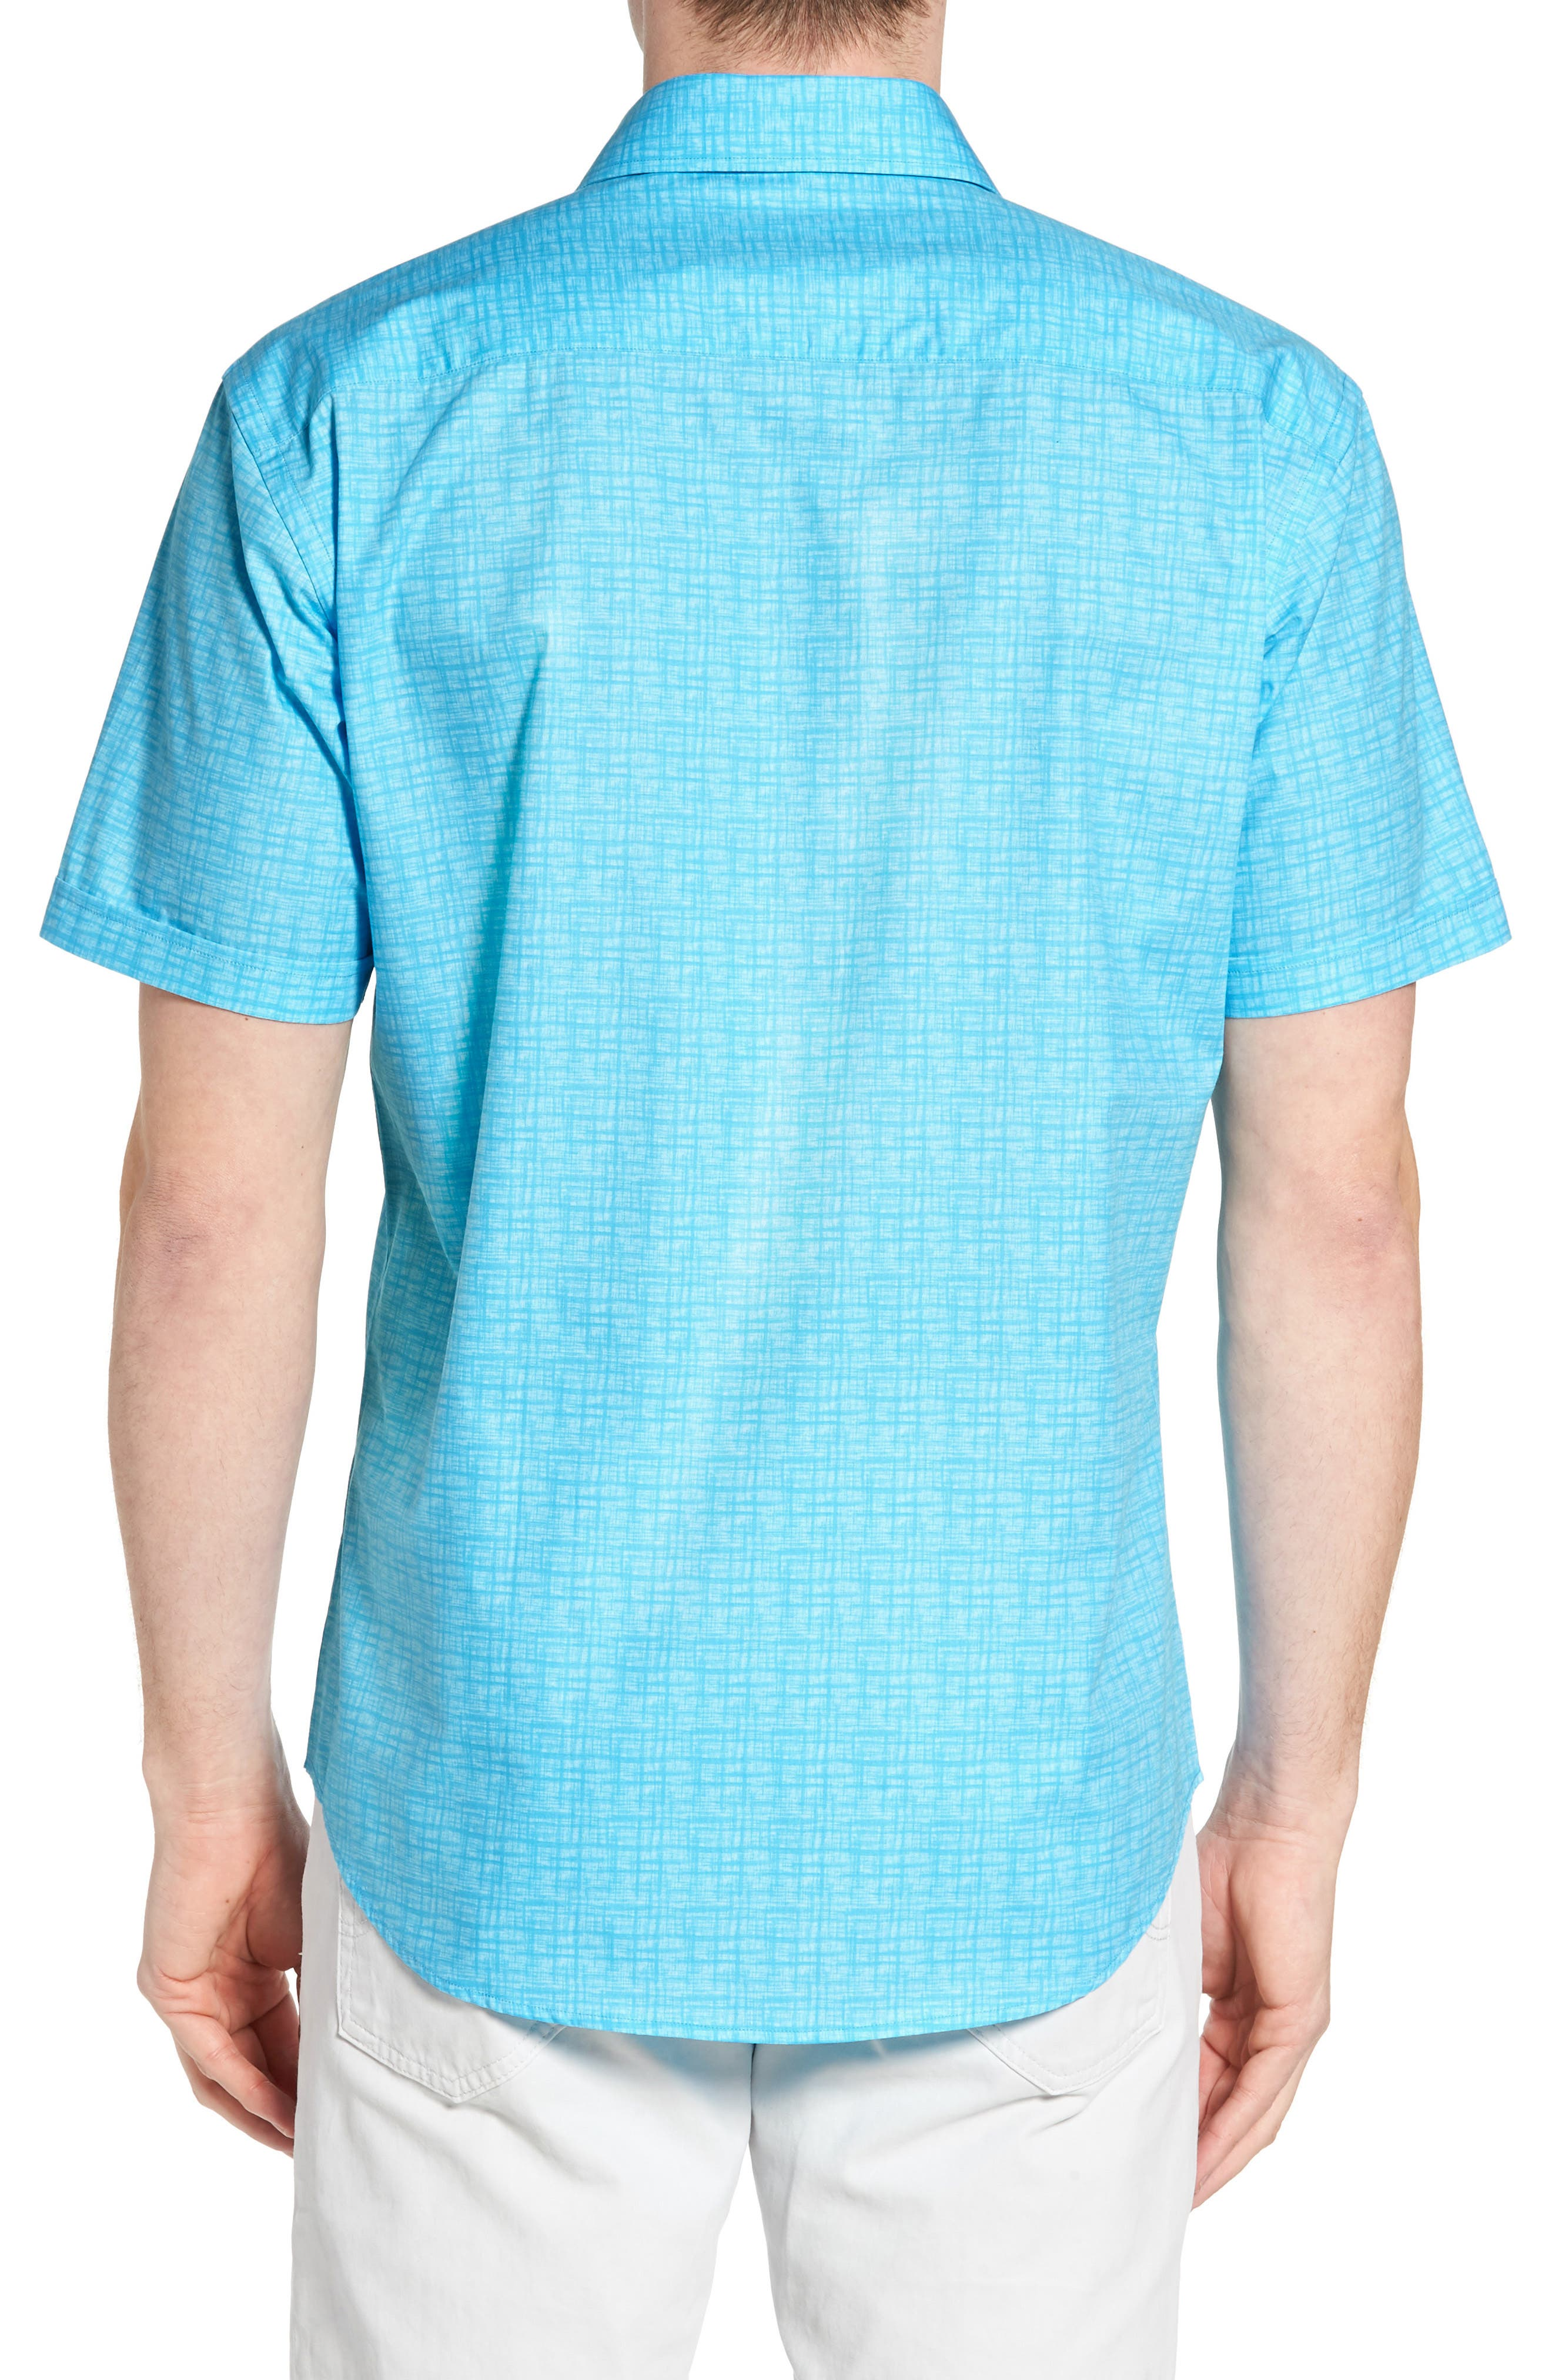 Freehand Shaped Fit Sport Shirt,                             Alternate thumbnail 2, color,                             Aqua